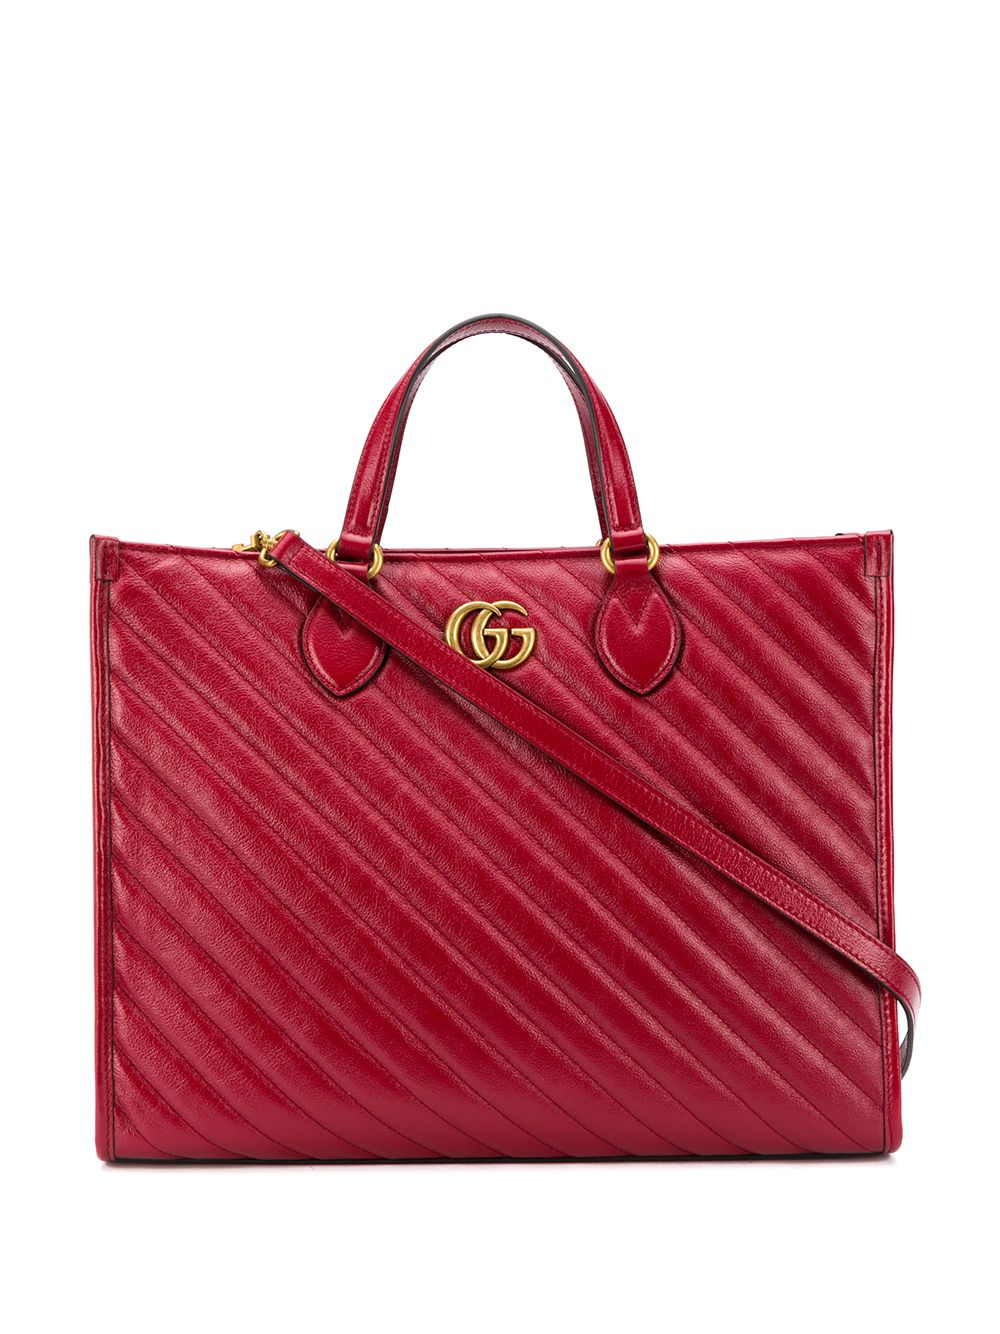 Gg Marmont Leather Shopping Bag